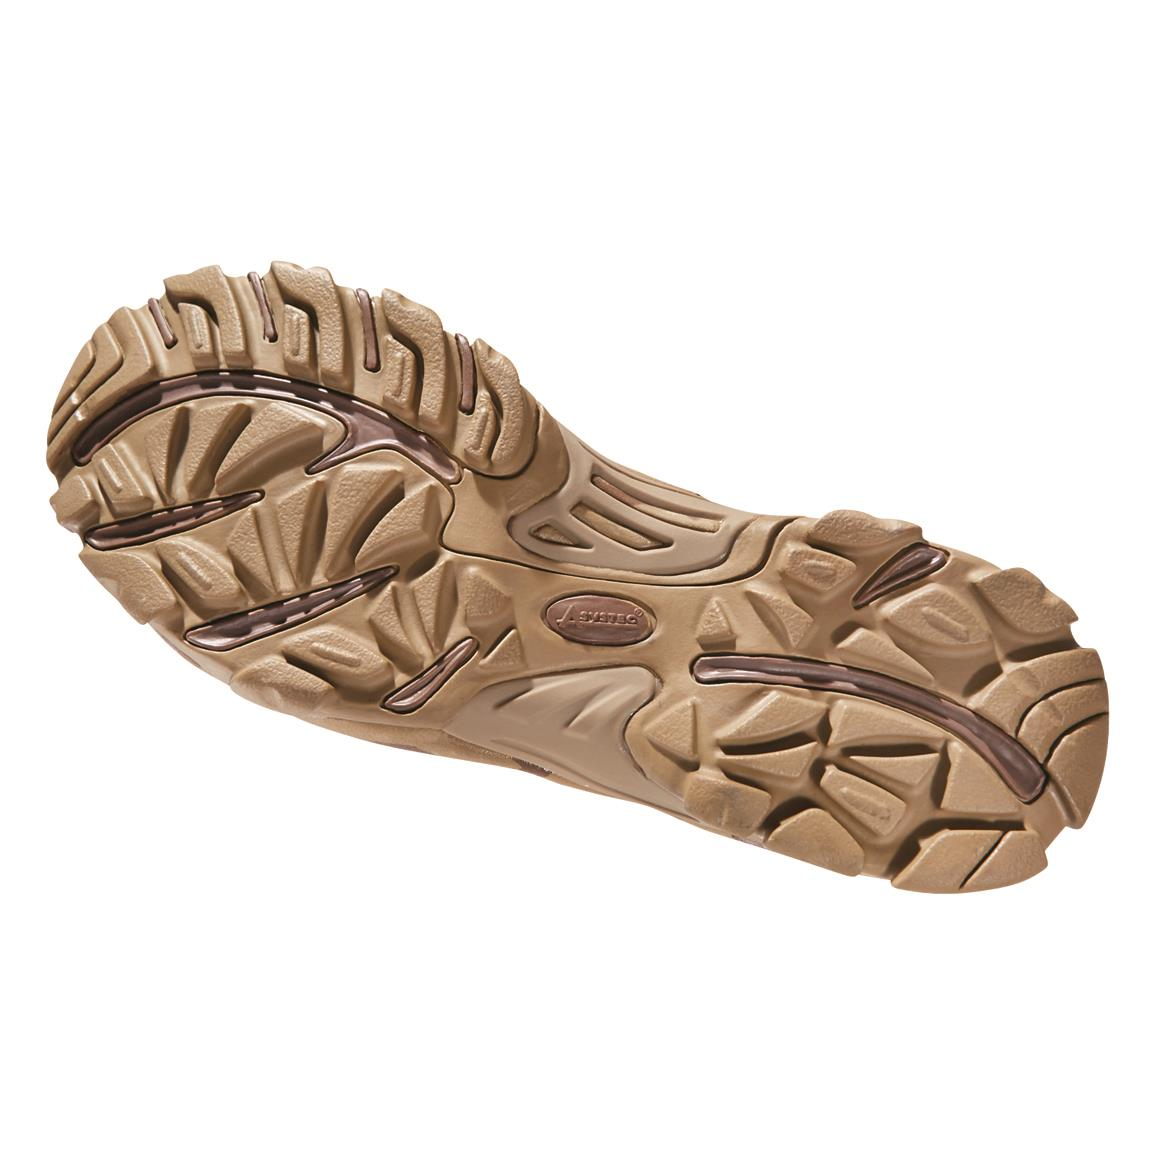 Rubber outsole with torsion control for exceptional stability while climbing, scaling, etc.